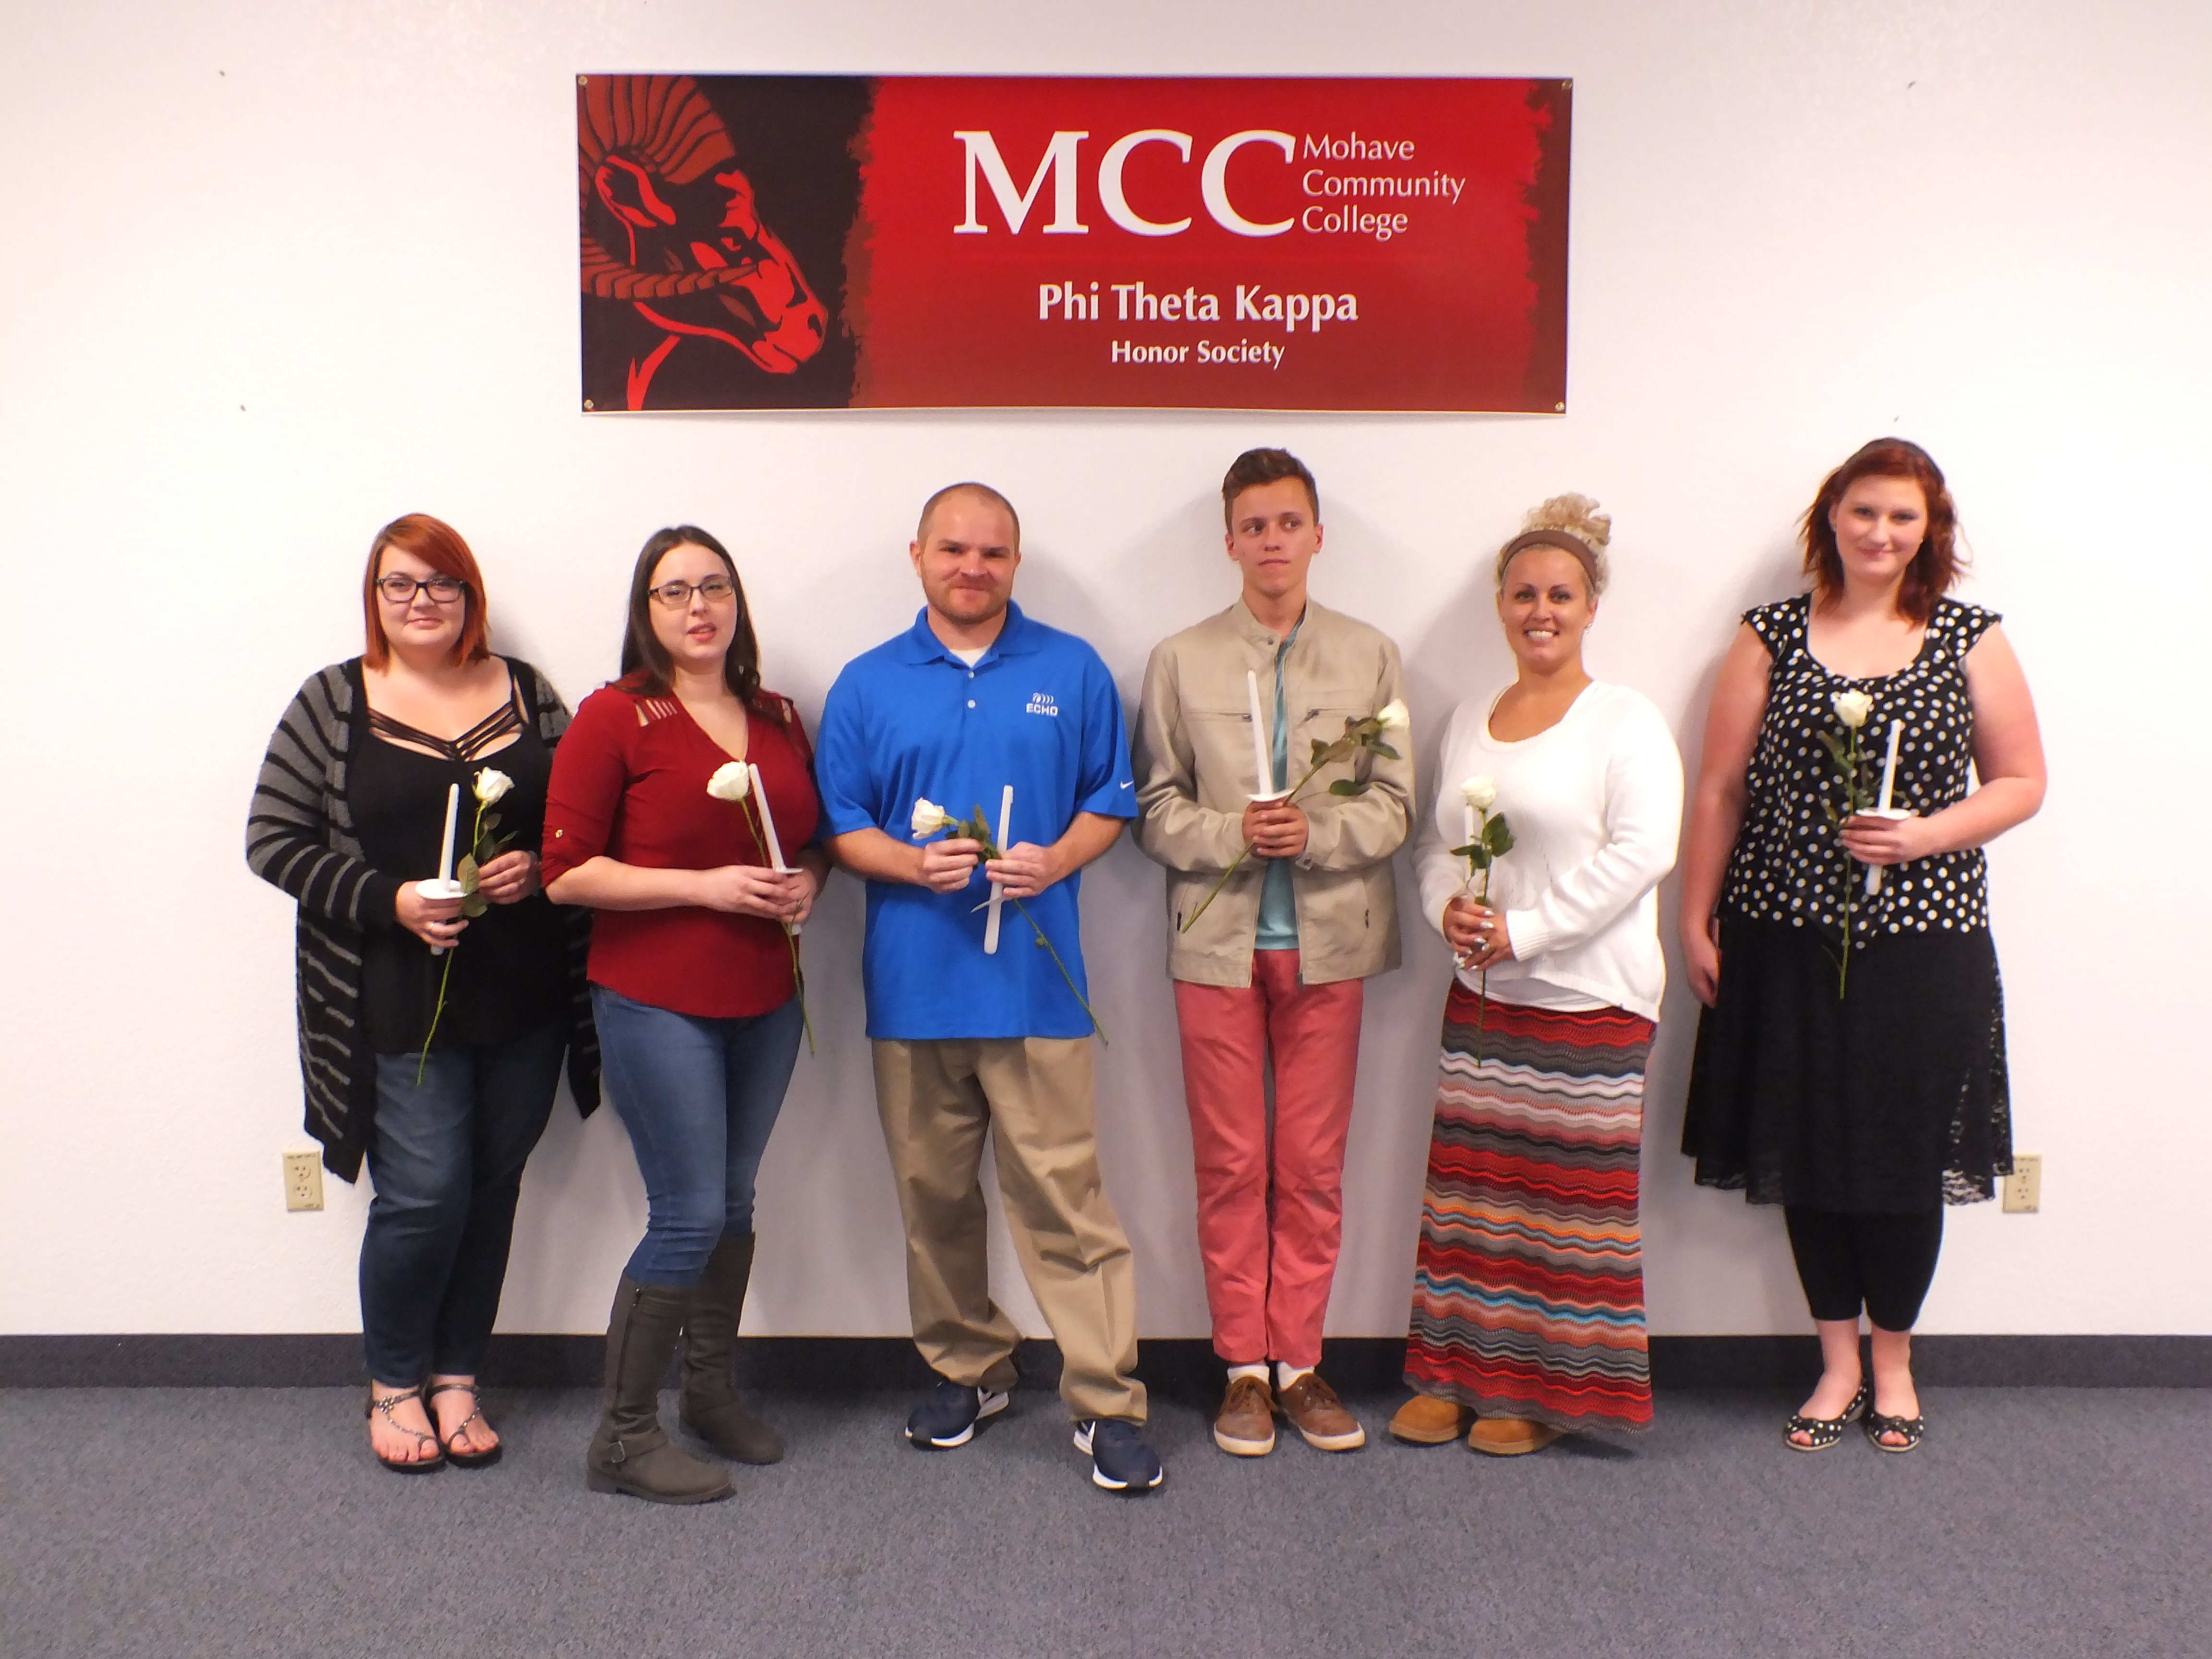 MCC Honor Society Inducts New Members